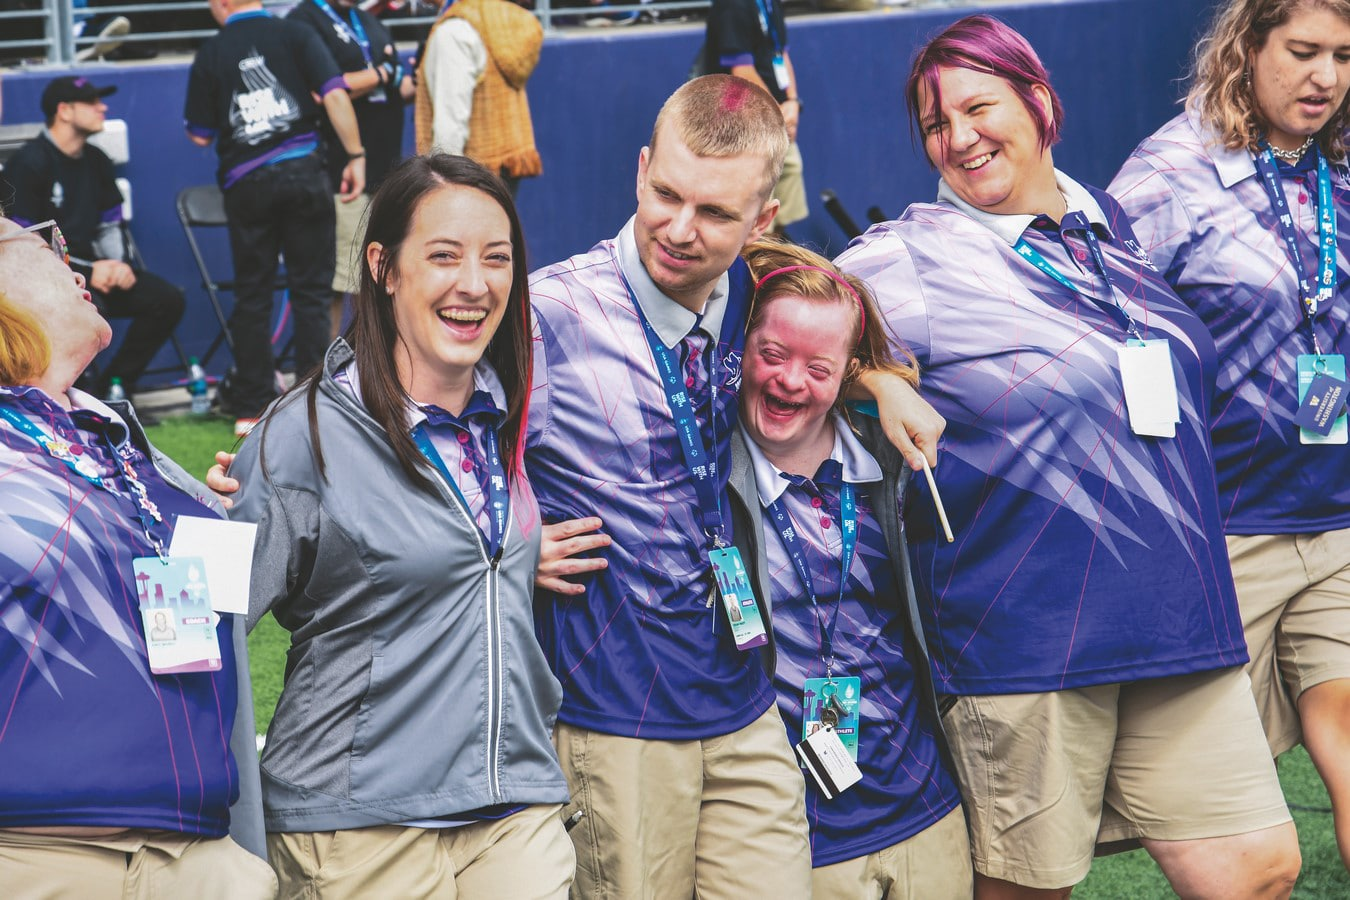 A group of athletes and volunteers stand arm in arm with smiles on their faces